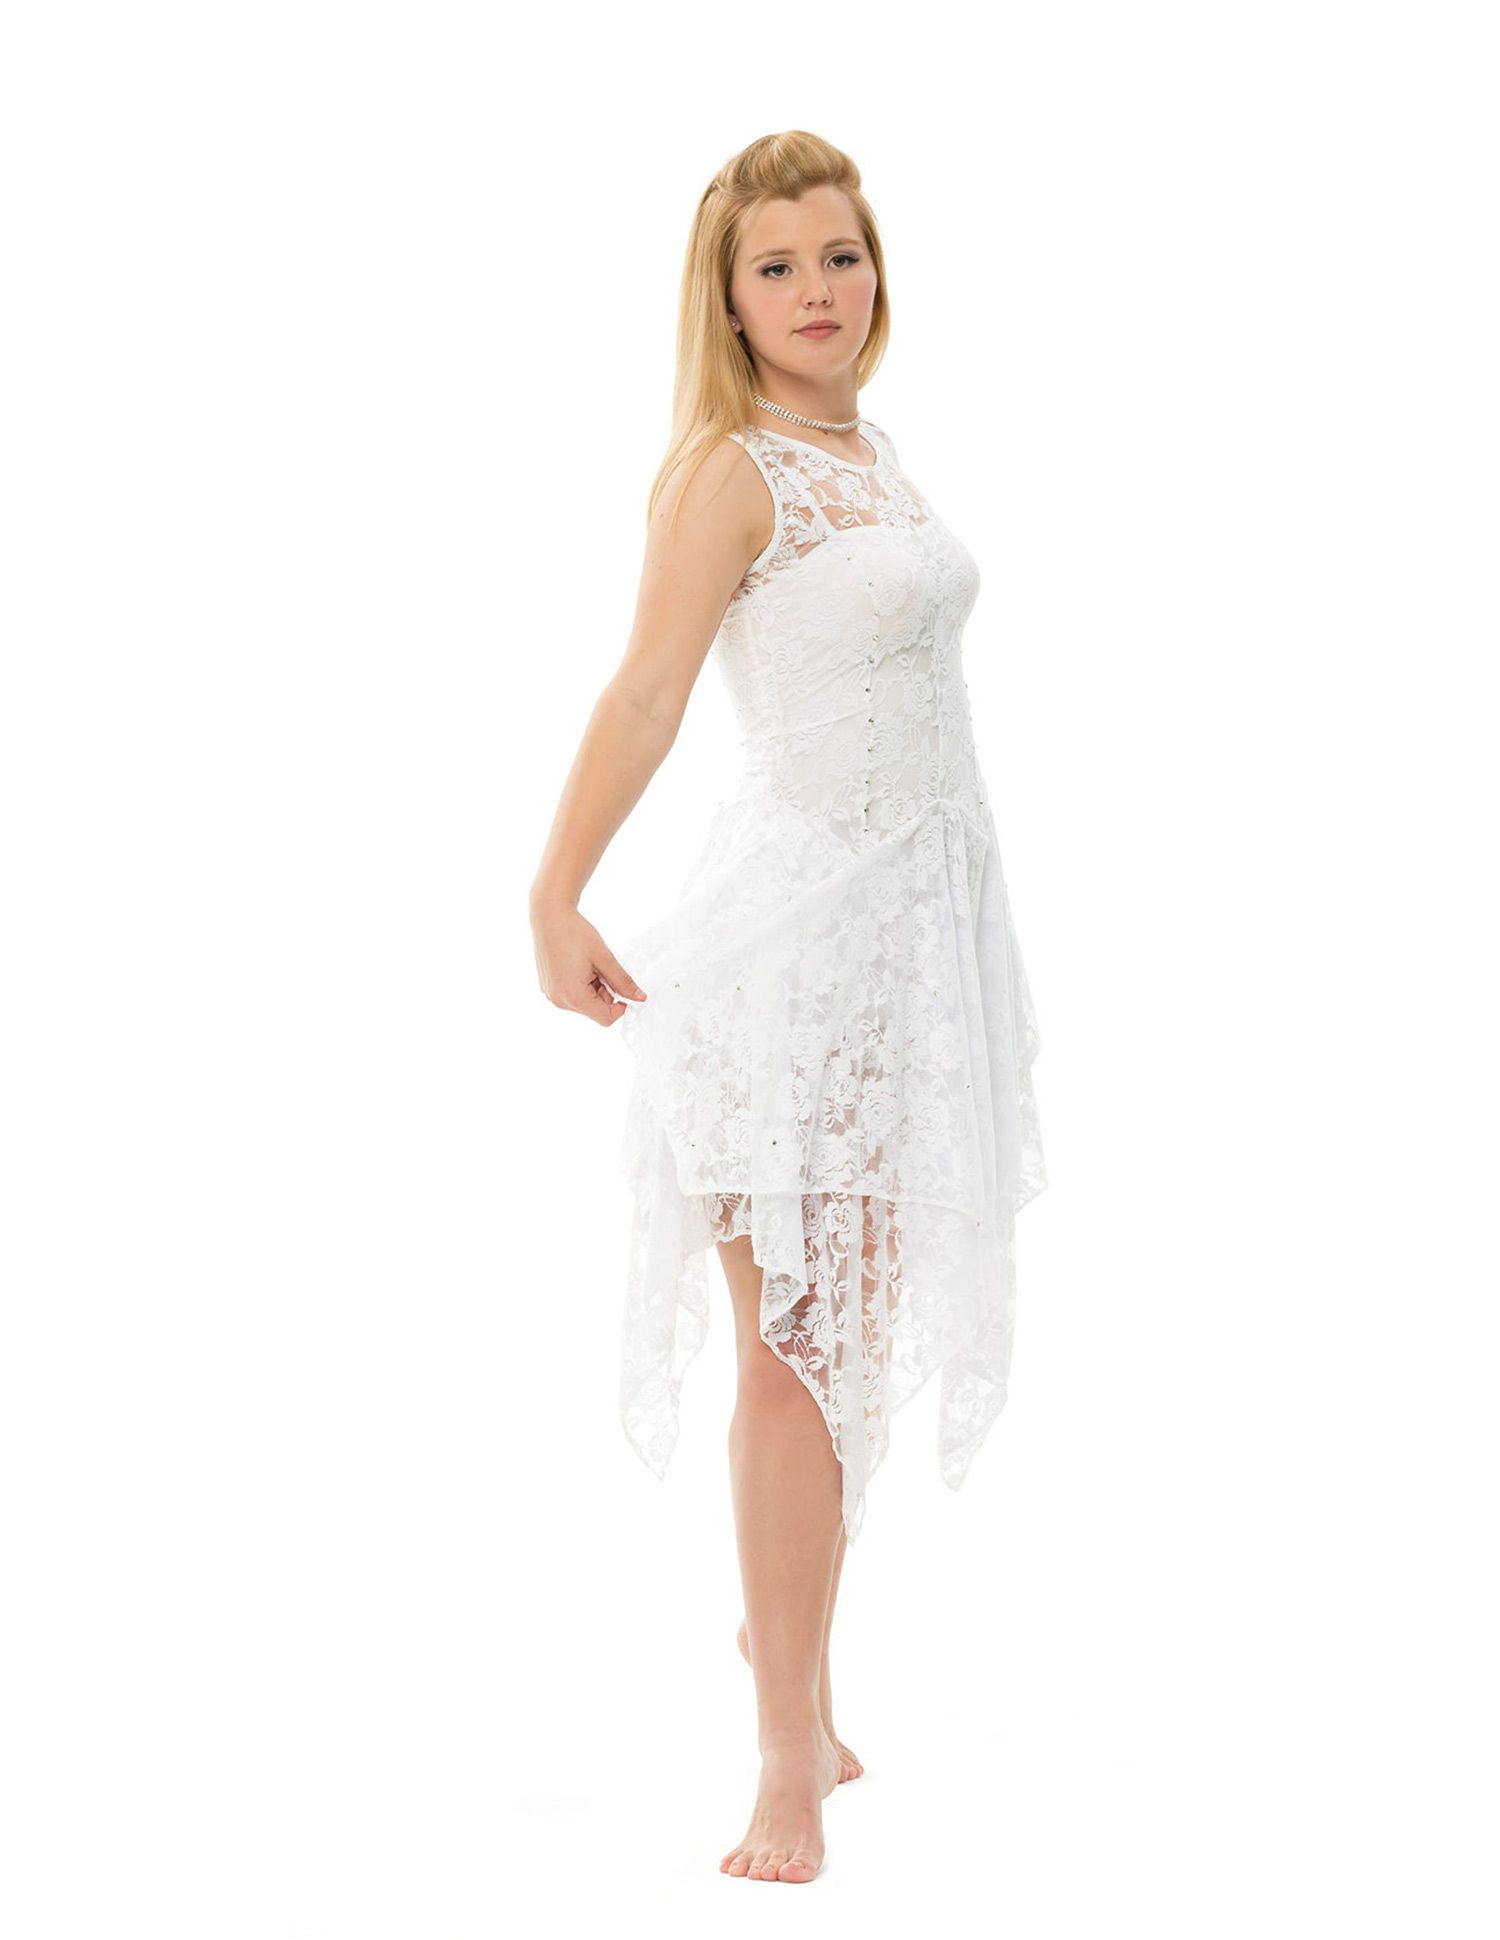 ded1235d3 White Lyrical Dance Dresses One of my next dance costume